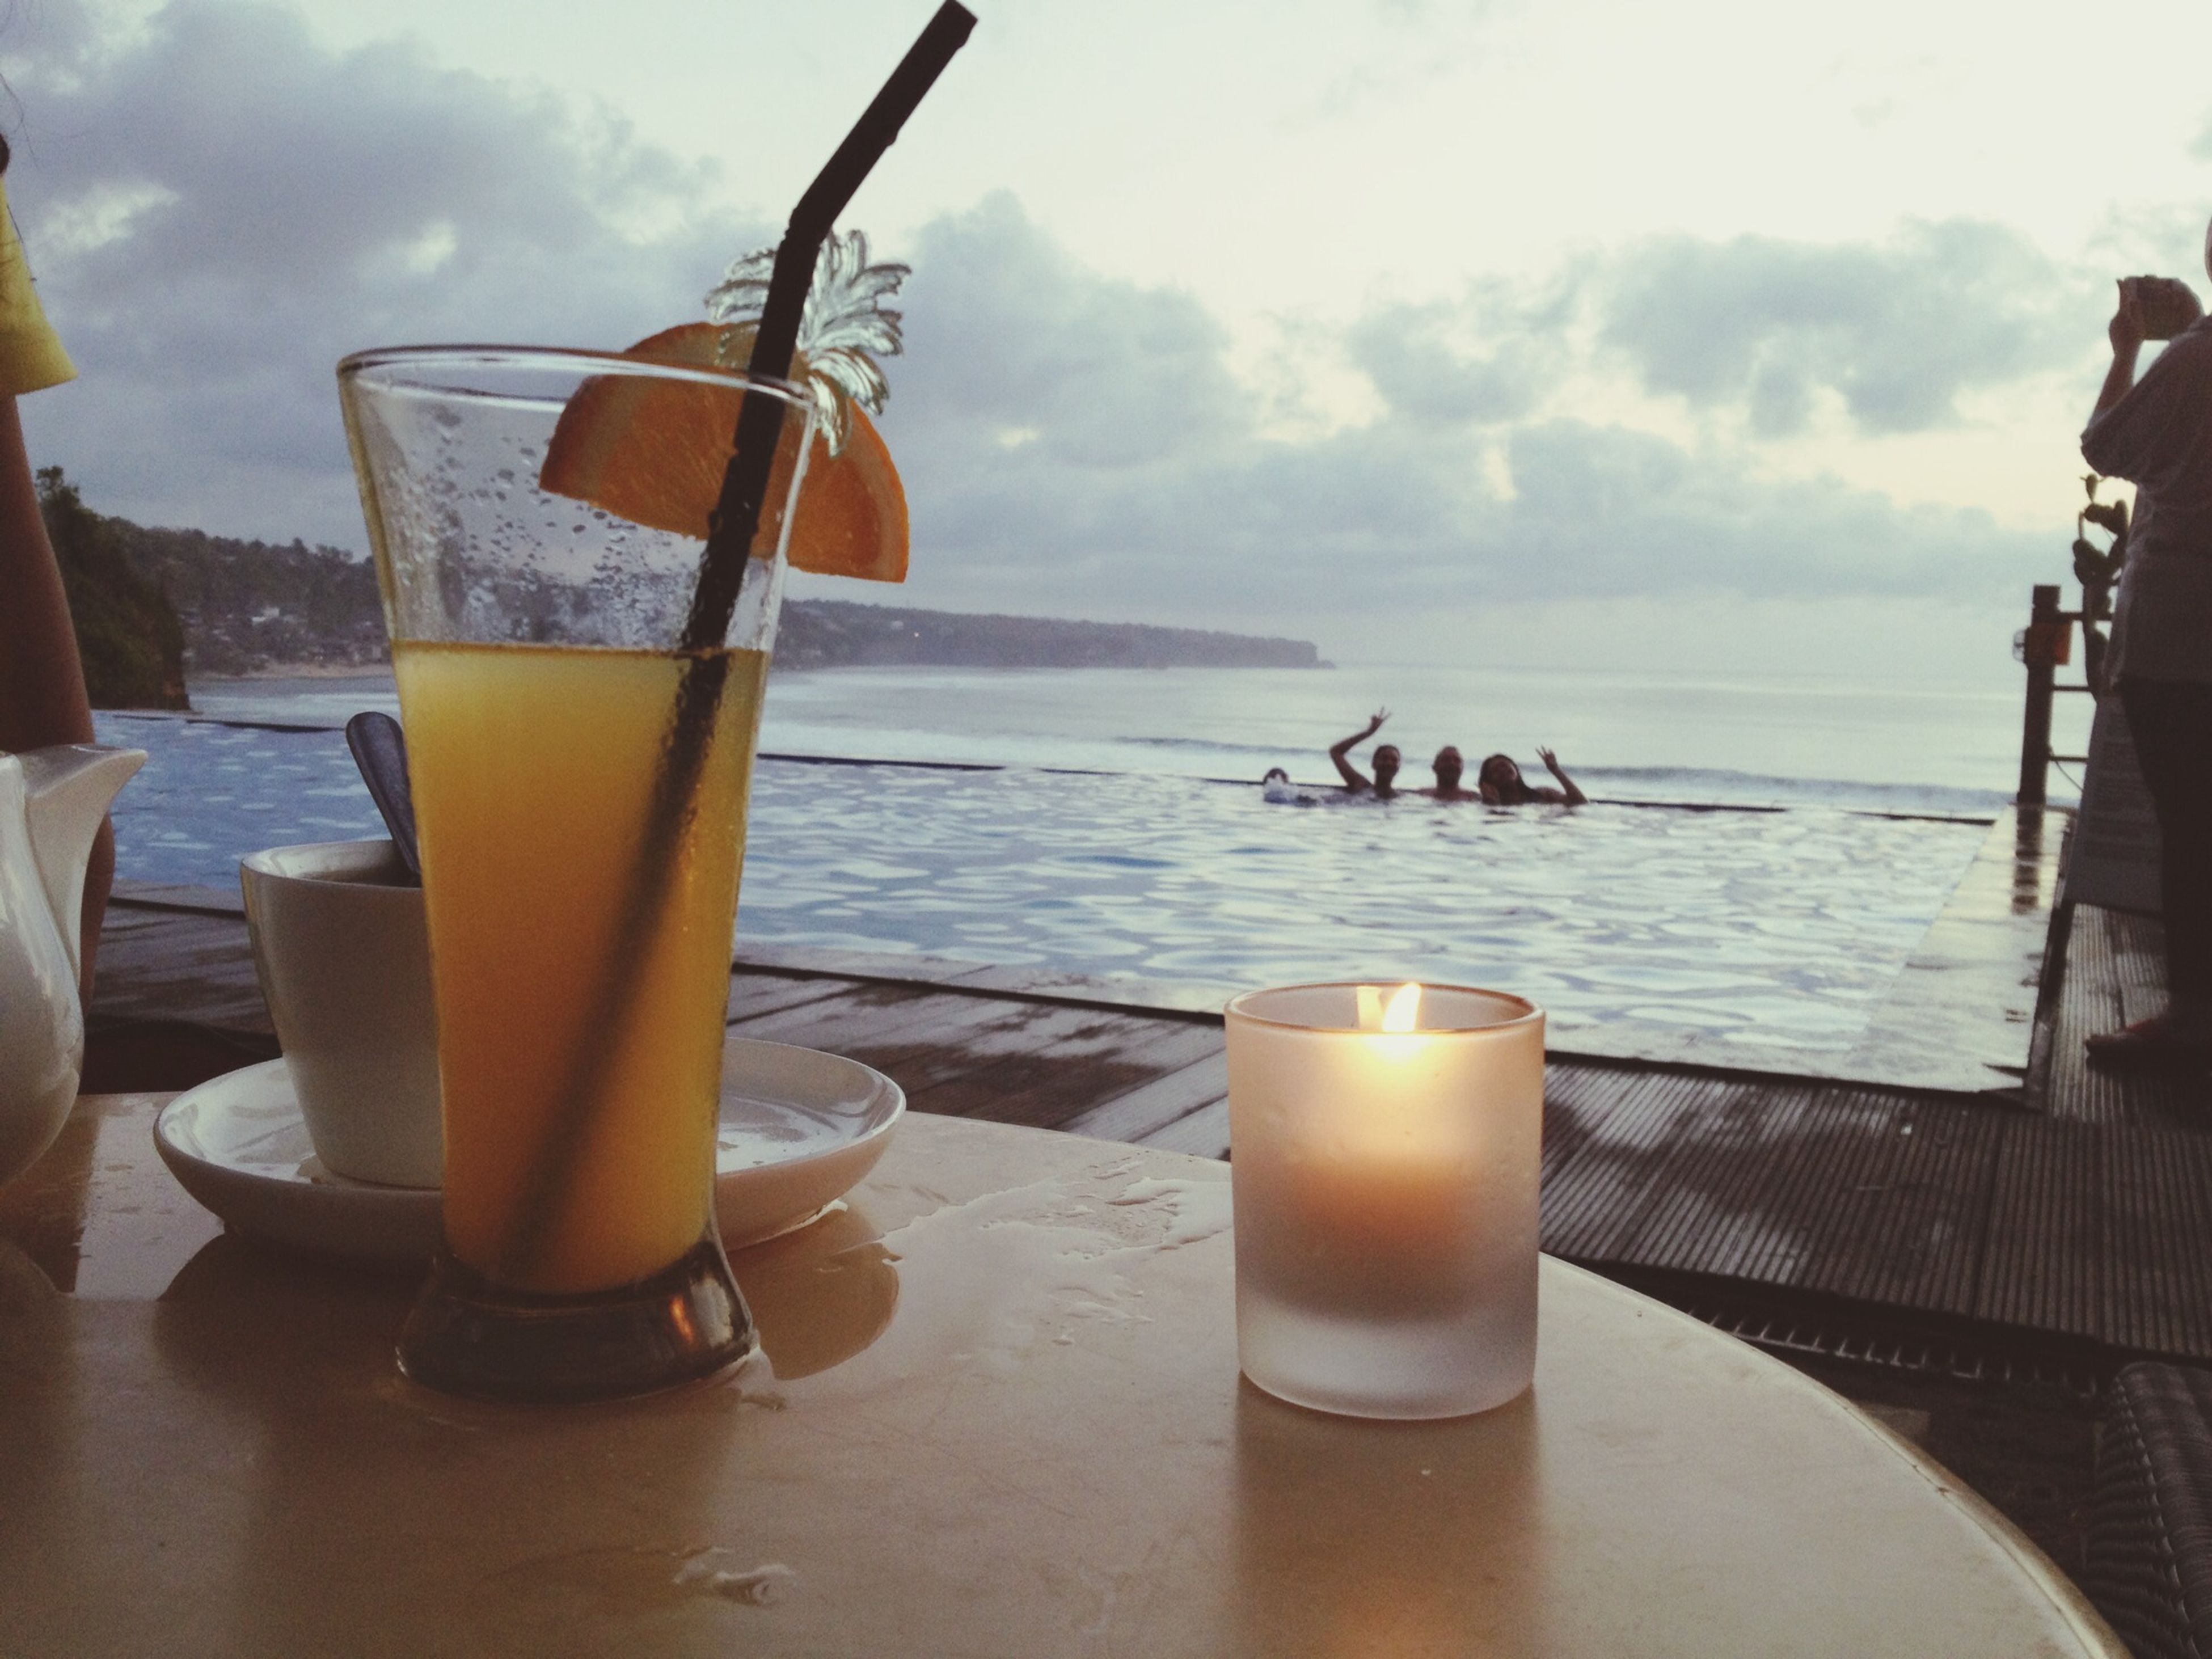 drink, food and drink, refreshment, table, sea, sky, drinking glass, freshness, water, cloud - sky, horizon over water, beach, drinking straw, alcohol, beverage, sunset, cloud, outdoors, close-up, frothy drink